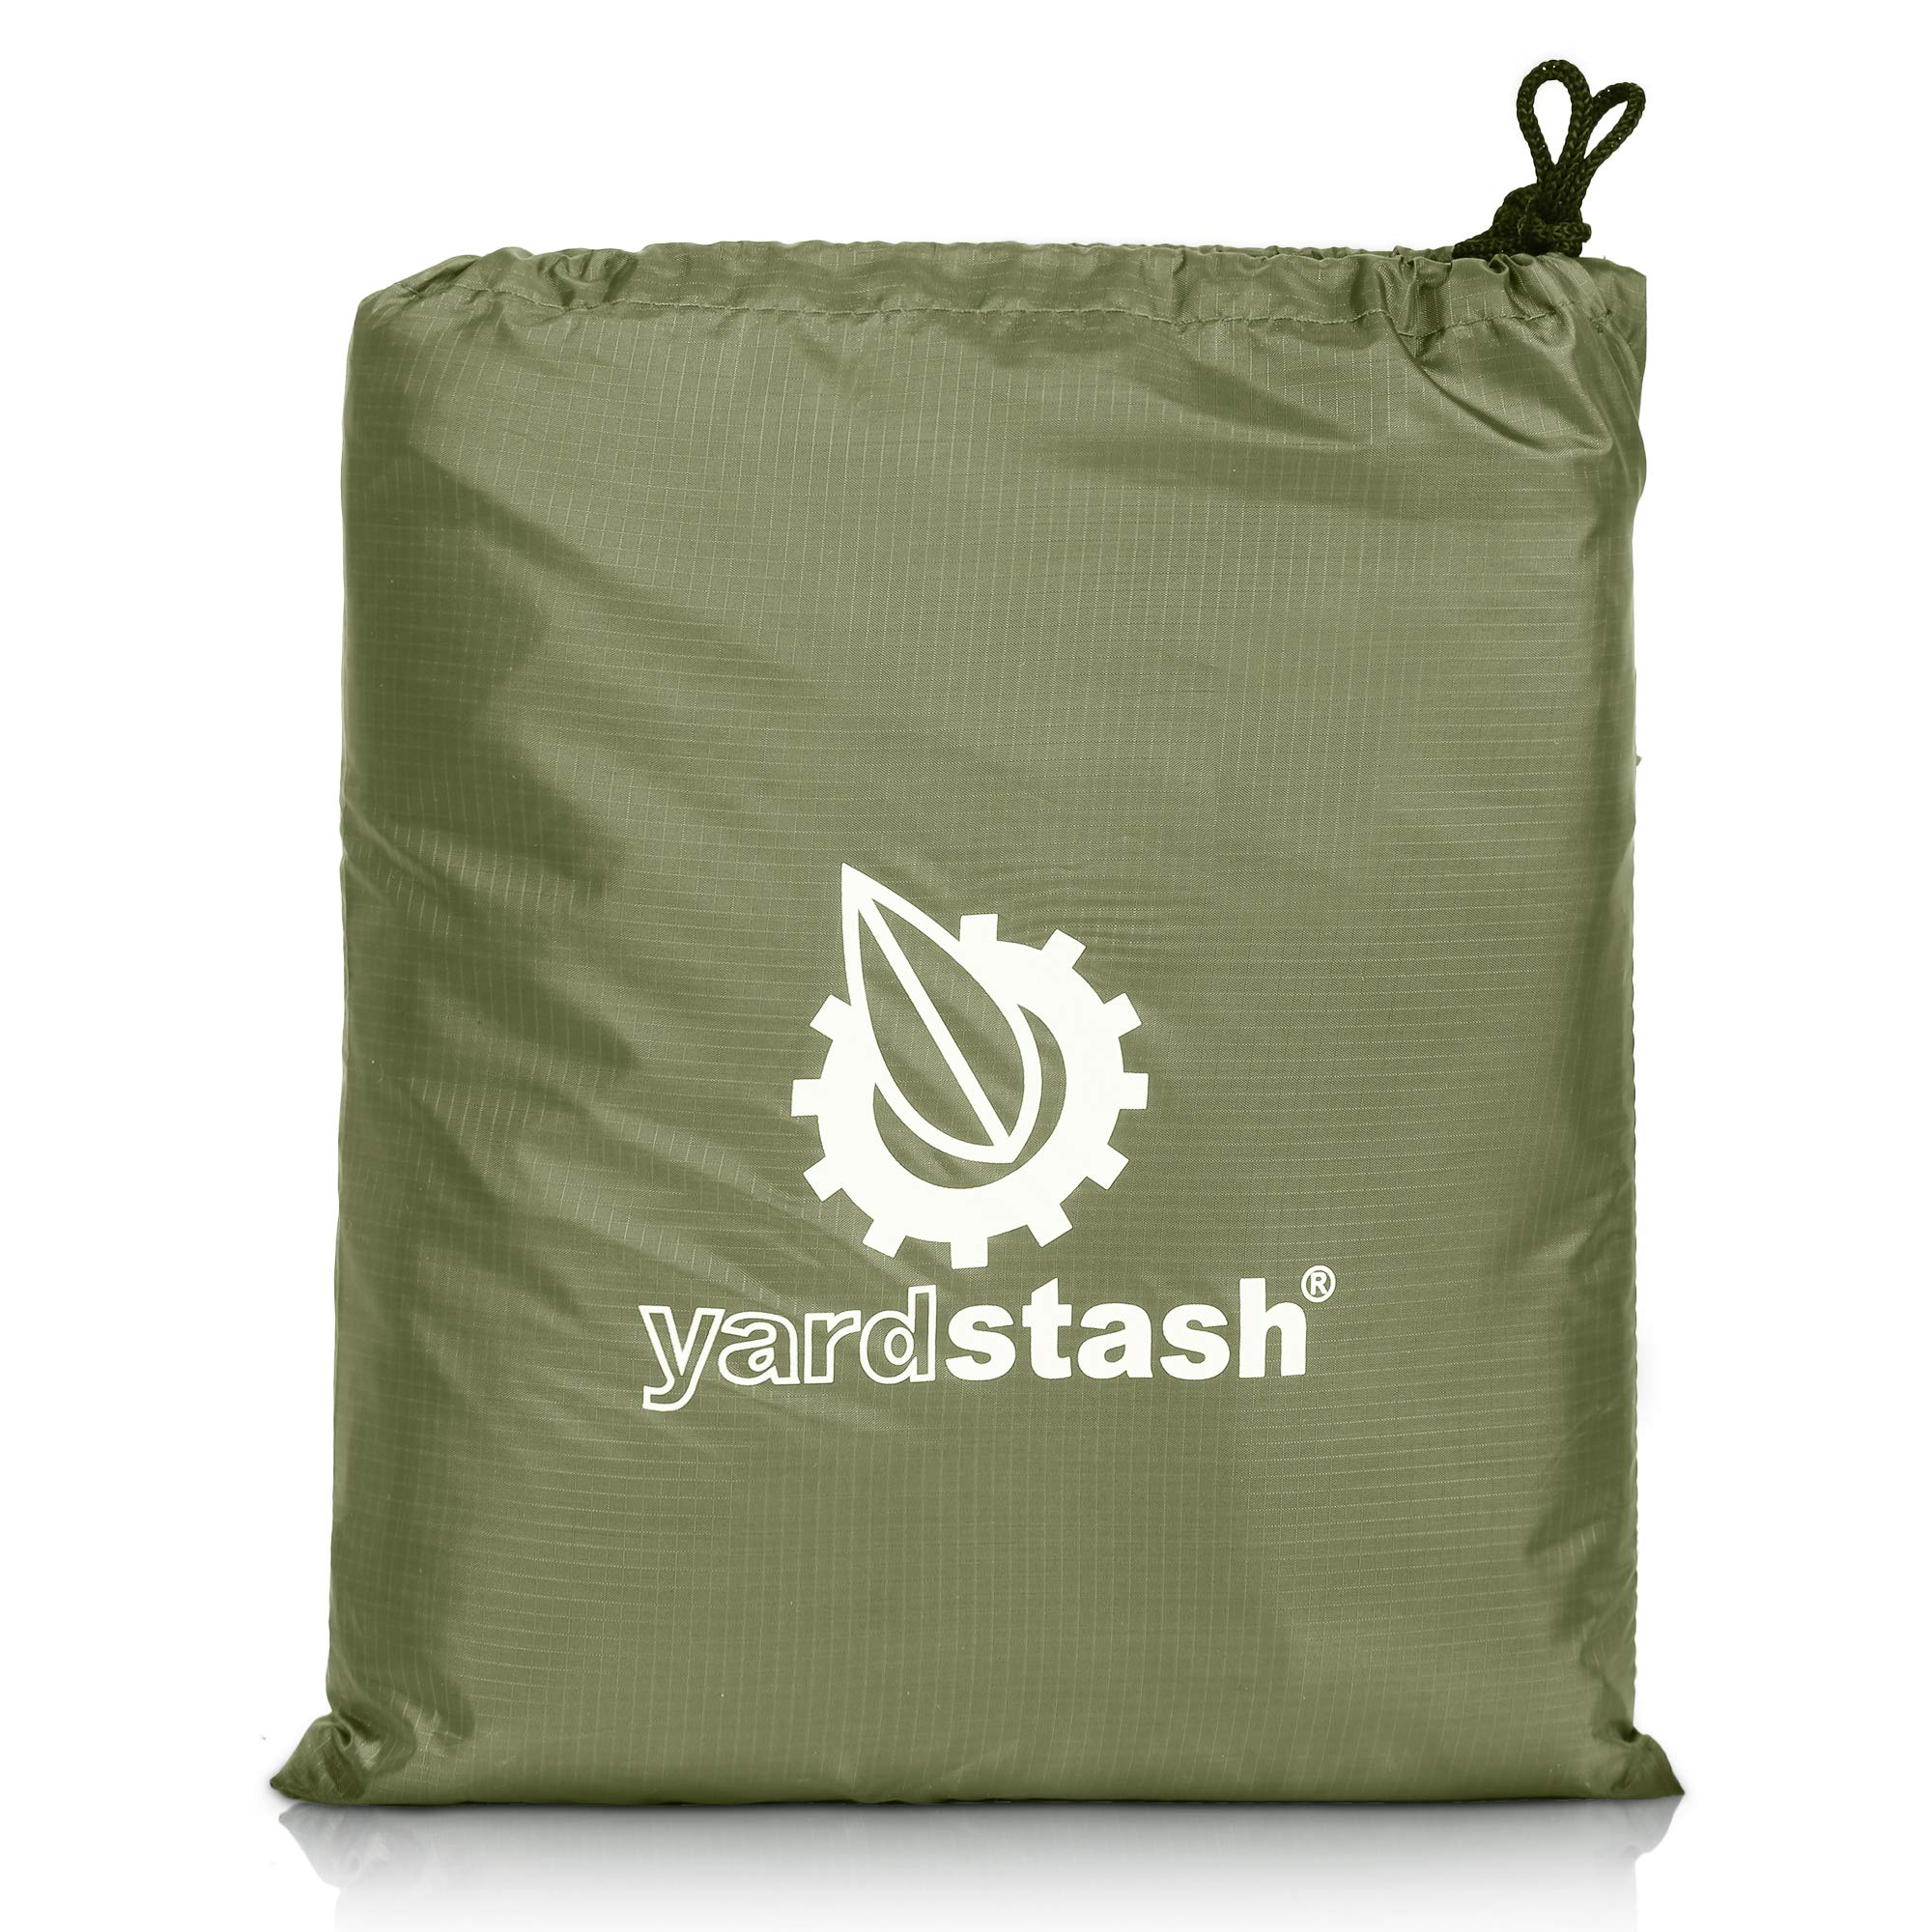 YardStash Bicycle Cover XL: Extra Large Size for Beach Cruiser Cover, 29er Mountain Bike Cover, Electric Bike Cover, Multiple Kids' Bike Cover and Cover for Bikes with Baskets, Child Seats or Racks by YardStash (Image #7)